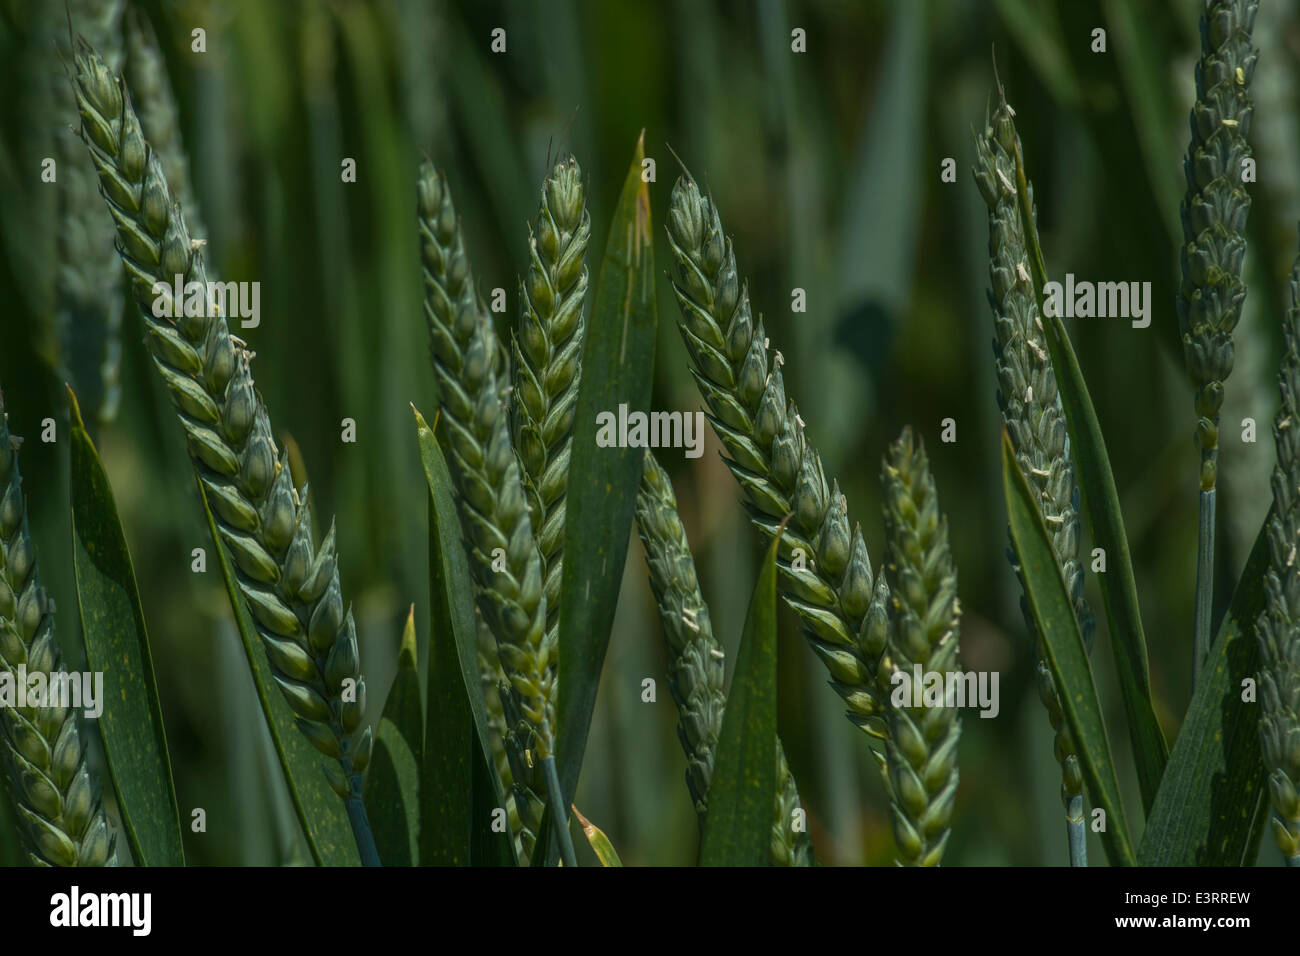 Heads of wheat [Triticum aestivum] still in their unripe green state. Visual metaphor for concept of famine. Metaphor - Stock Image